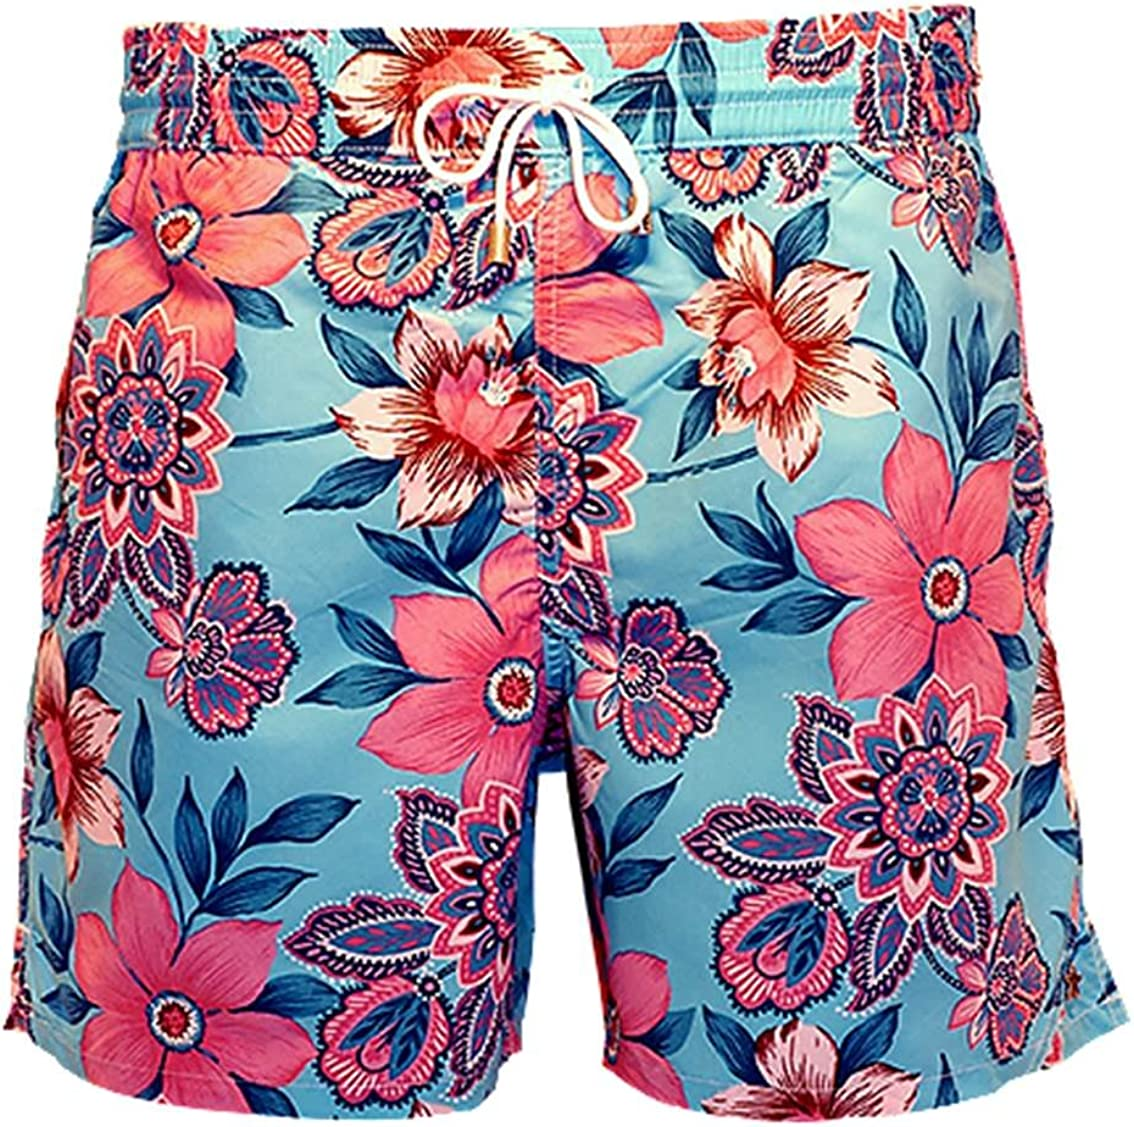 Bayahibe Swimwear Short Slim Fit Quick Dry French Swim Trunk for Men Blue with Pink Flowers